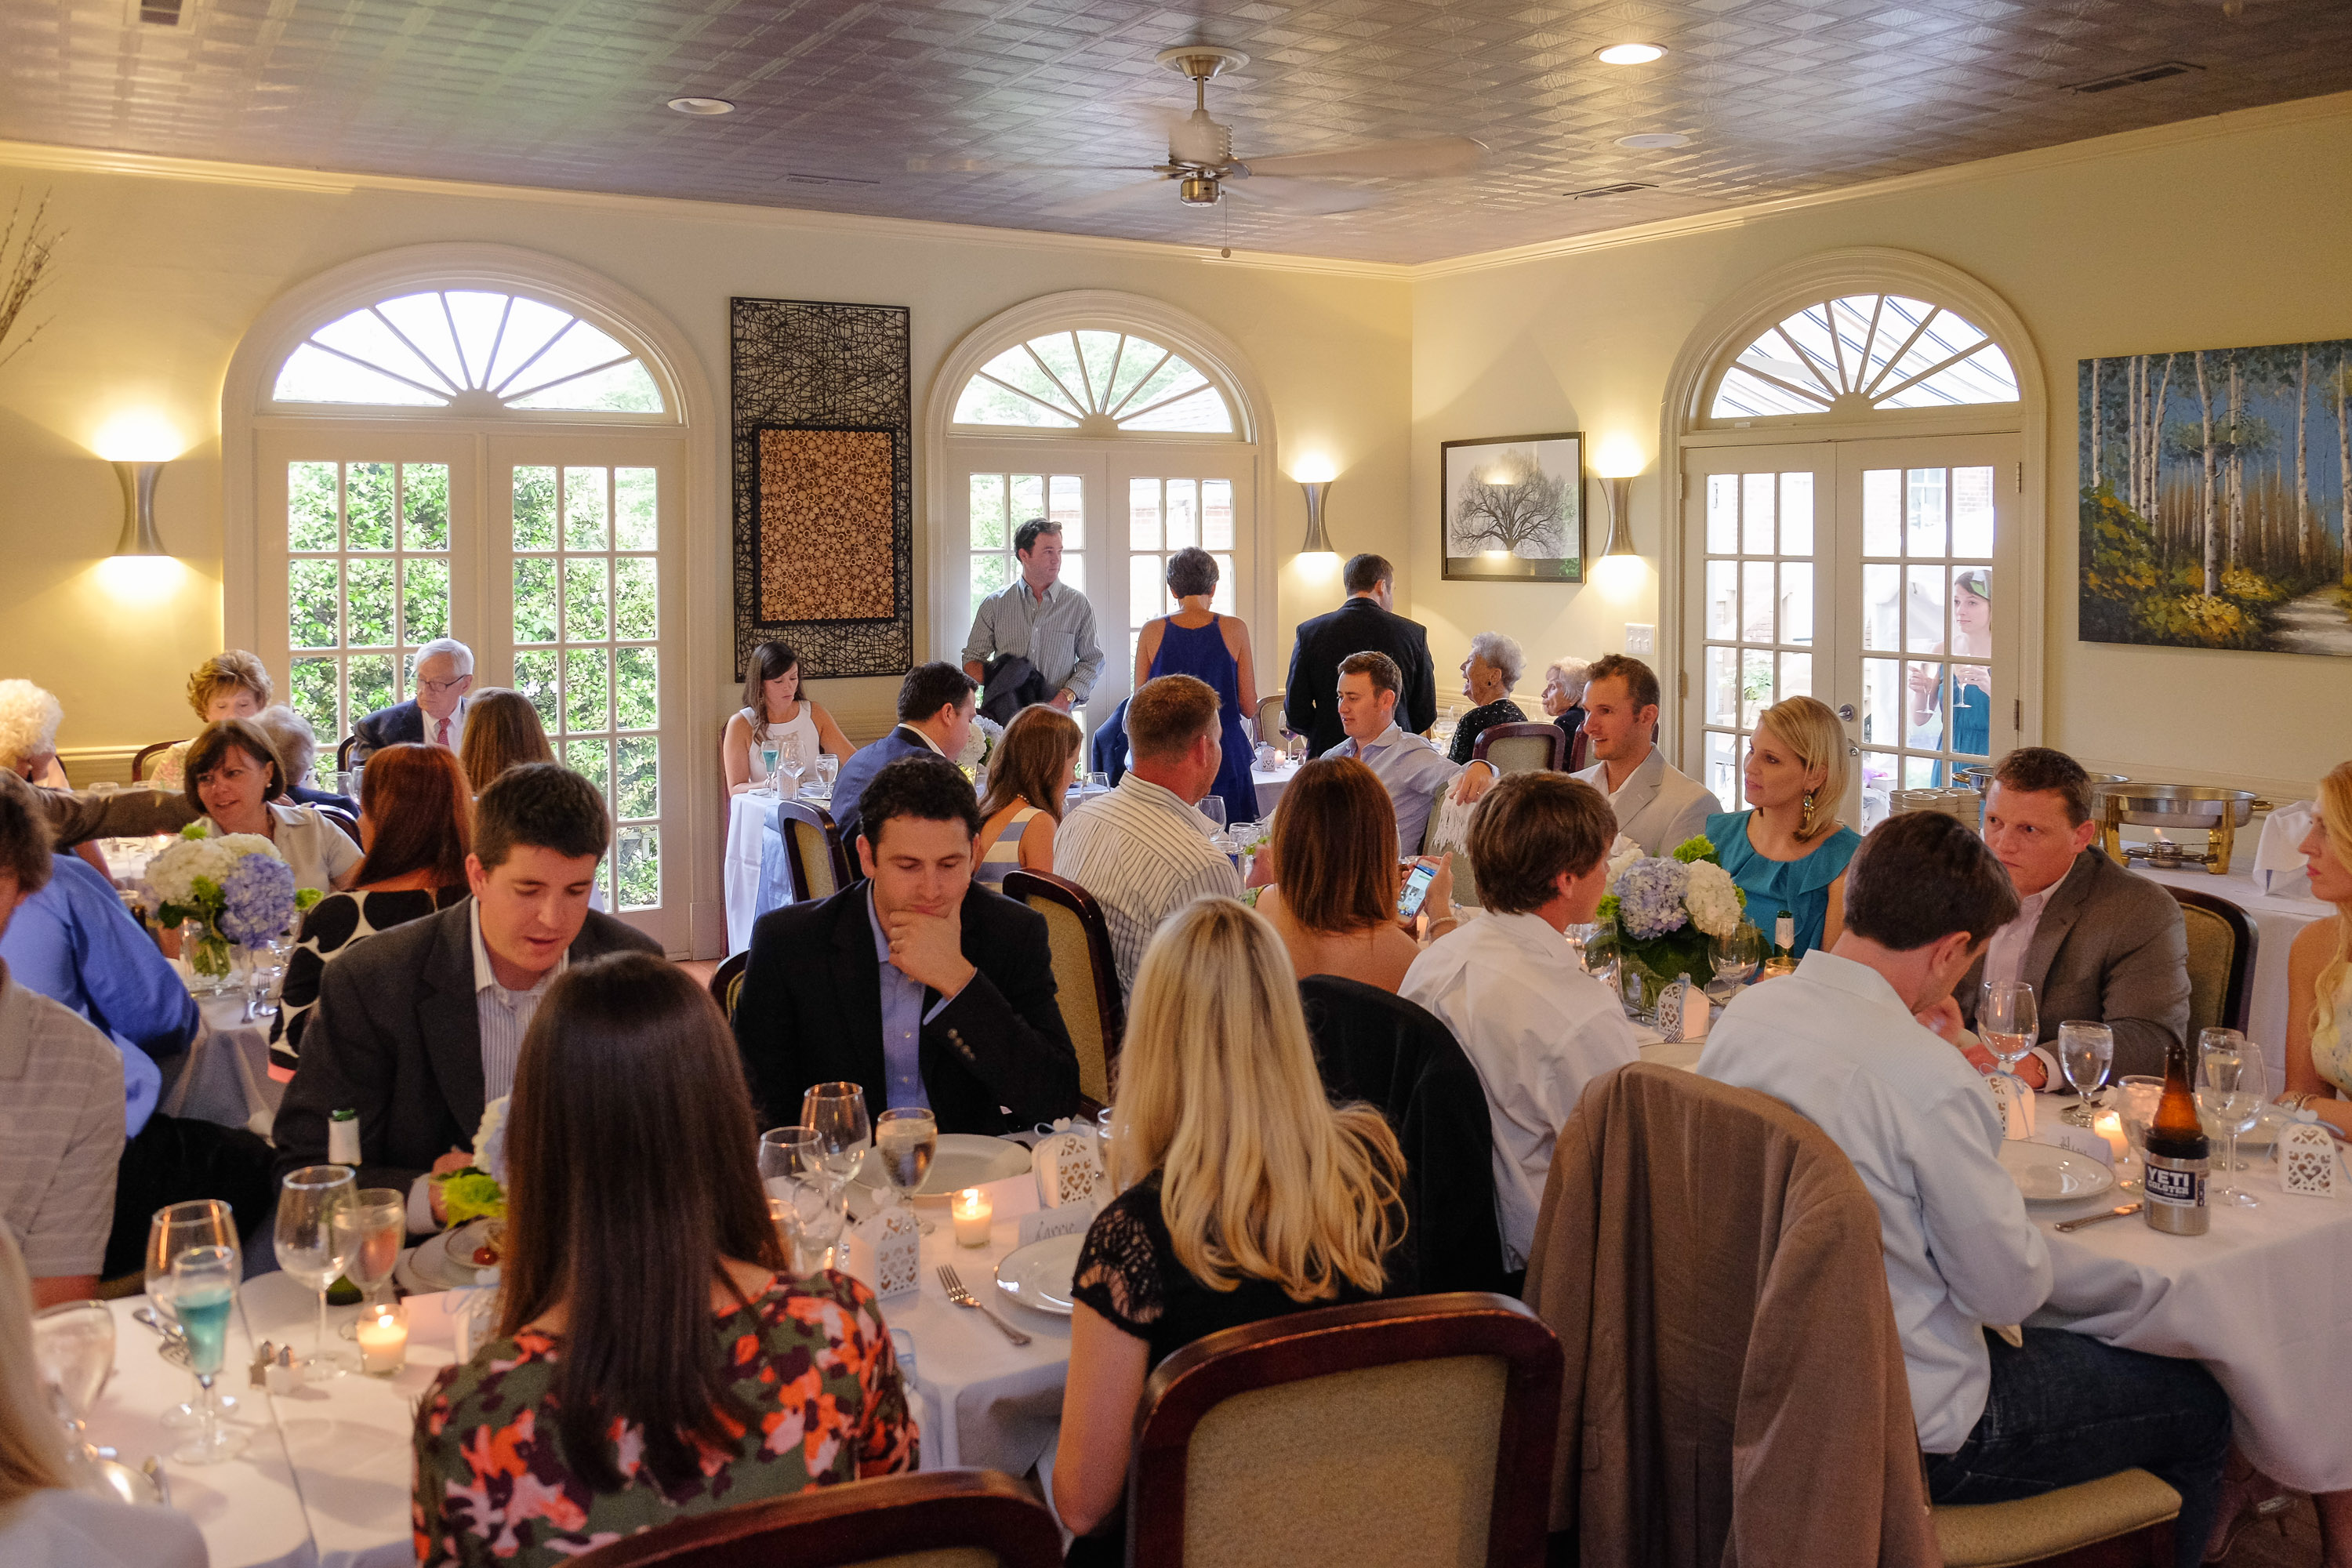 Events at an Edenton, NC Restaurant